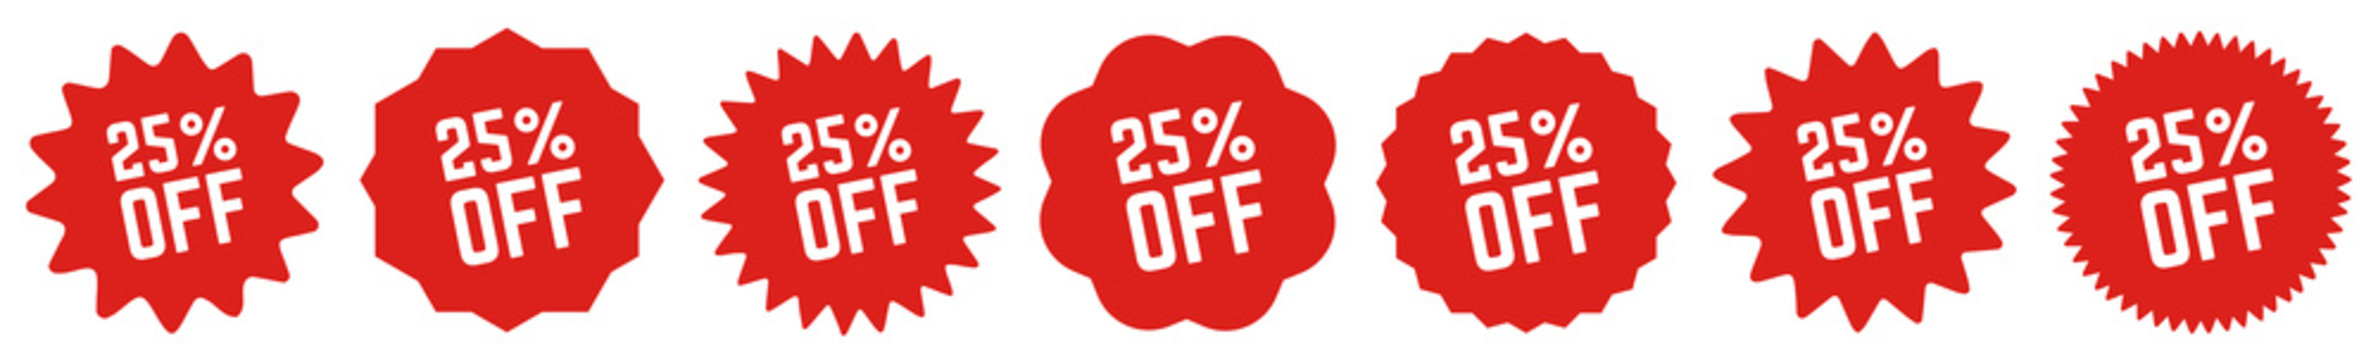 25 Percent OFF Discount Tag Red | Special Offer Icon | Sale Sticker | Deal Label | Variations